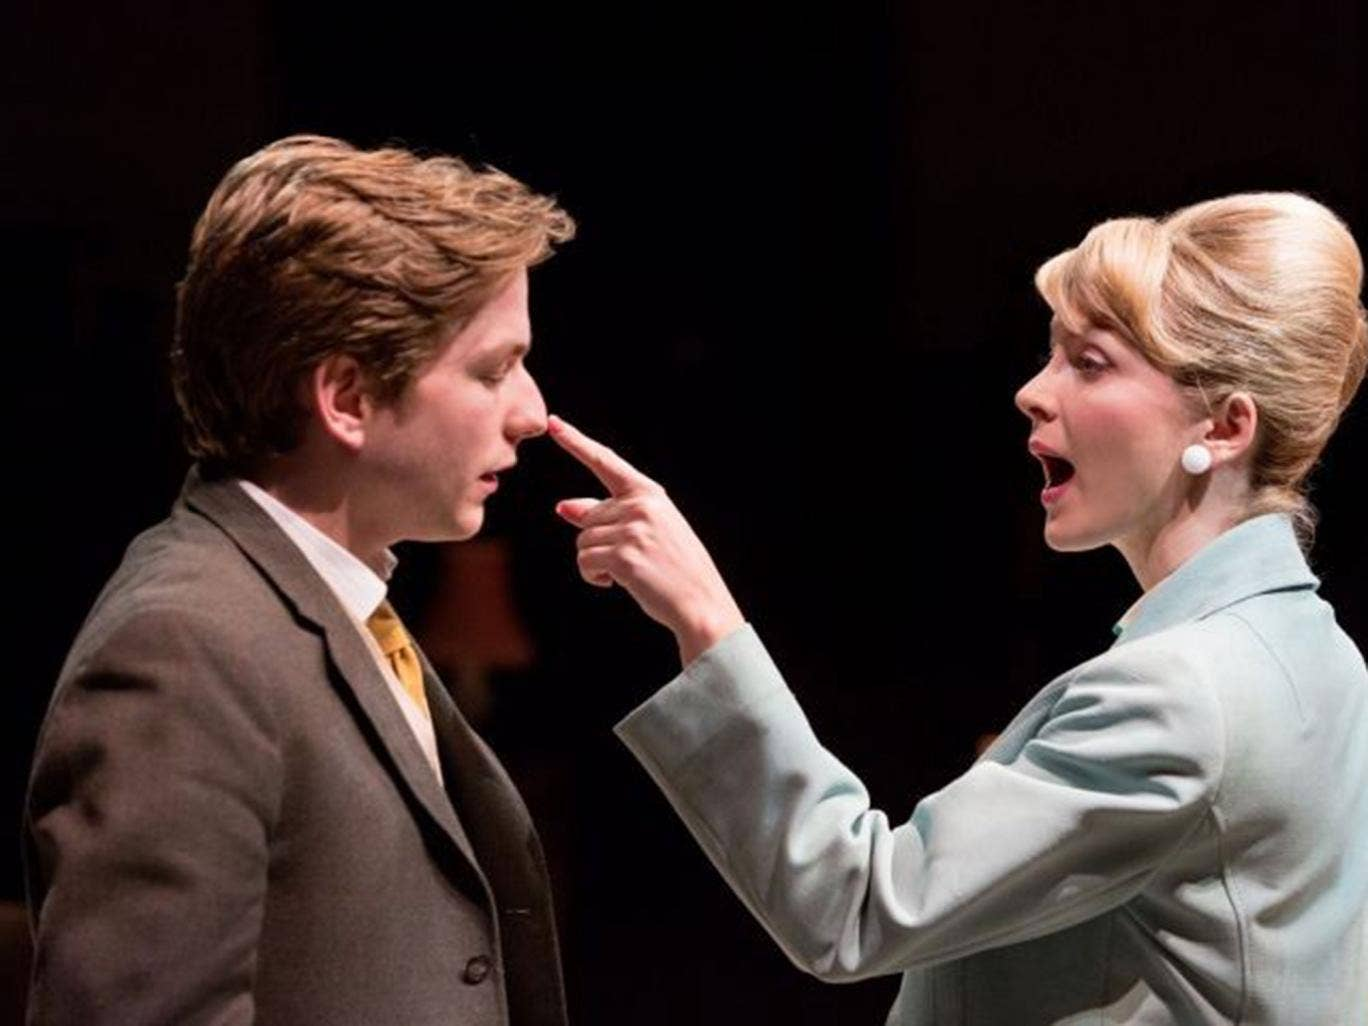 Harry McEntire as Billy Fisher and Katie Moore as Rita